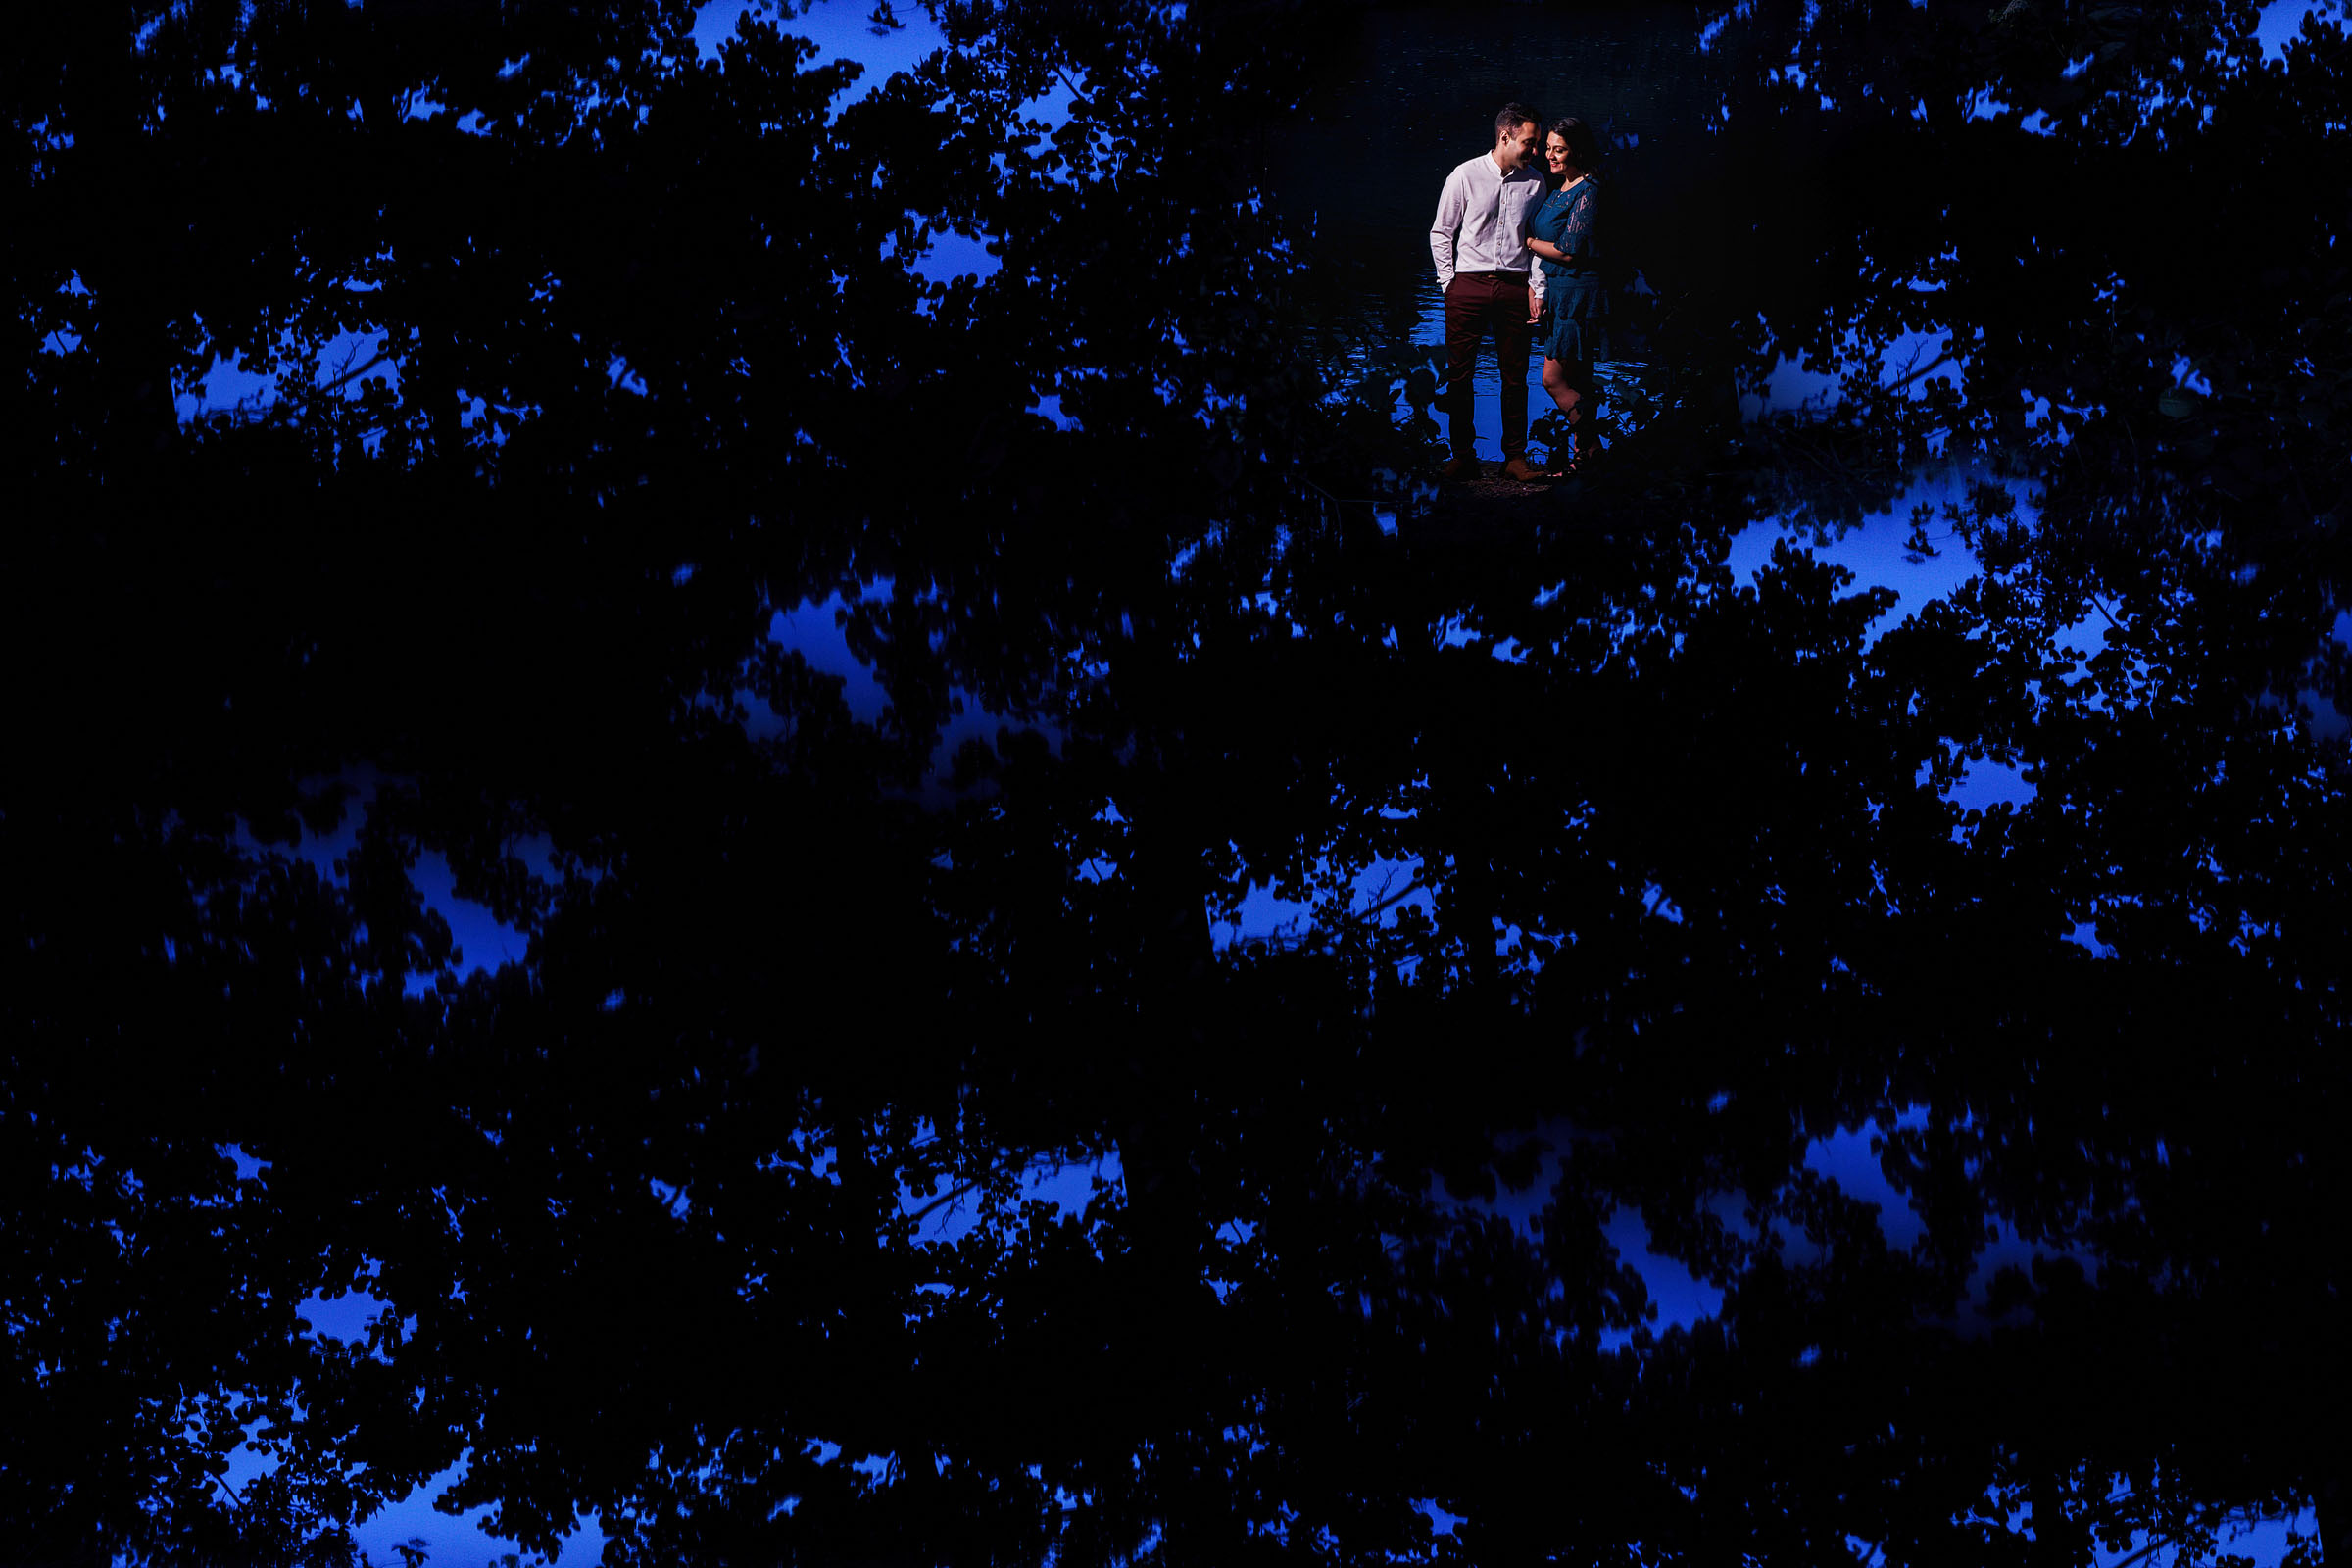 Engaged couple surrounded by reflection of trees and sky - photo by F5 Photography